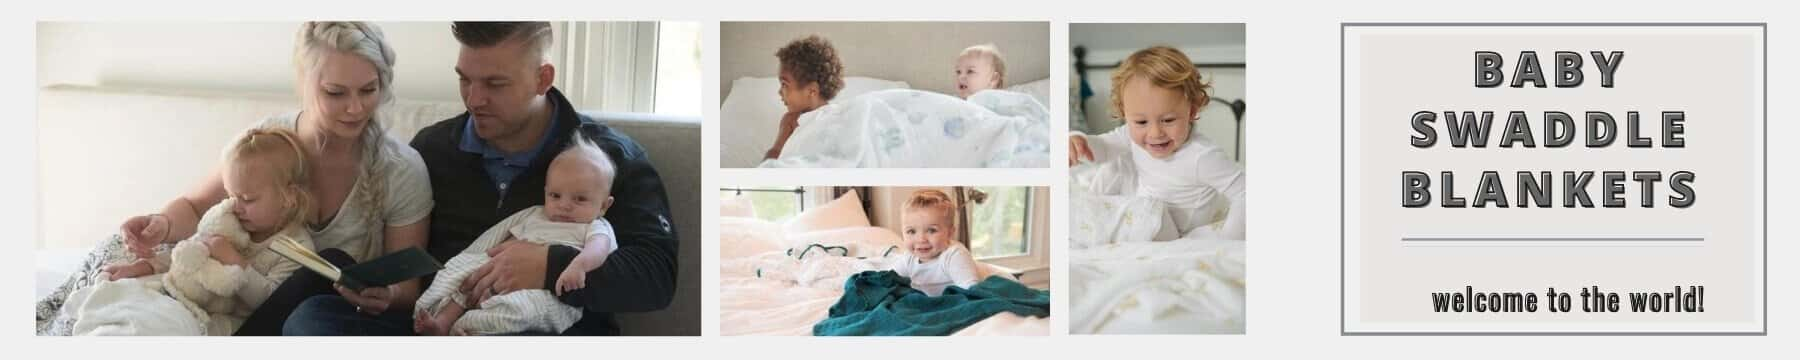 Banner Swaddle Blankets Collection - Roll Up Baby